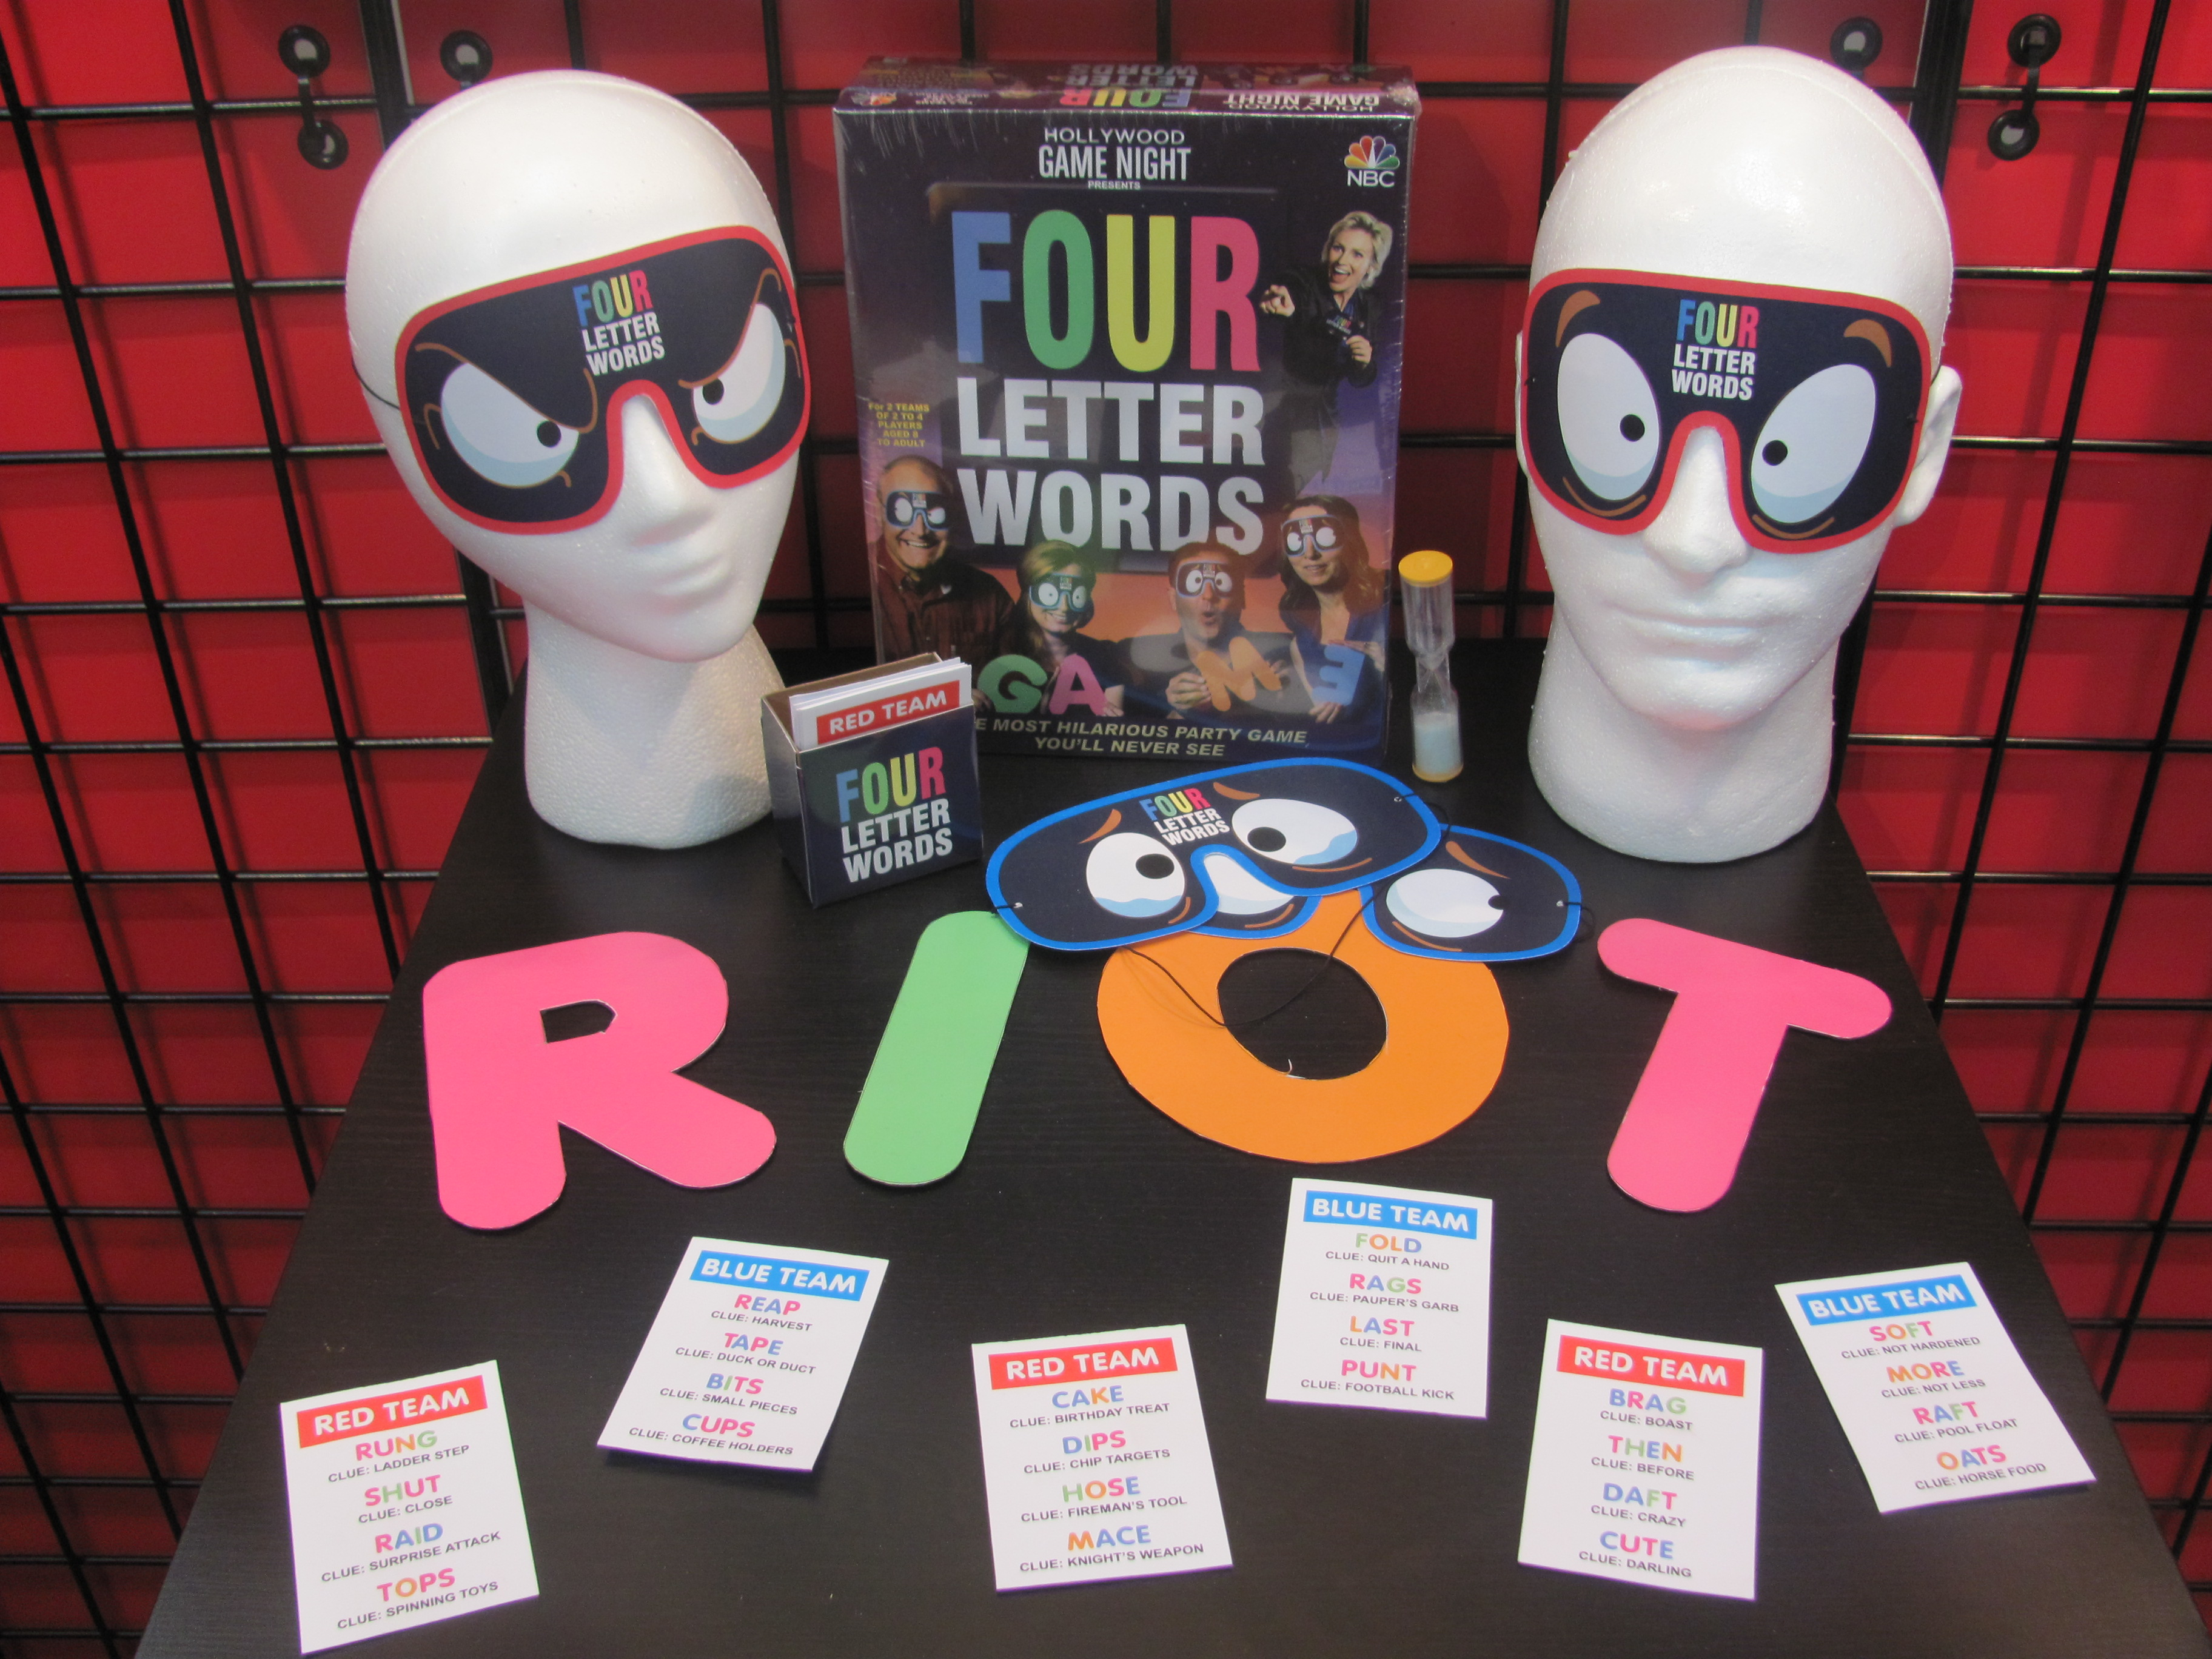 Toy Fair 2015—More Hollywood Game Night From TDC | Purple Pawn